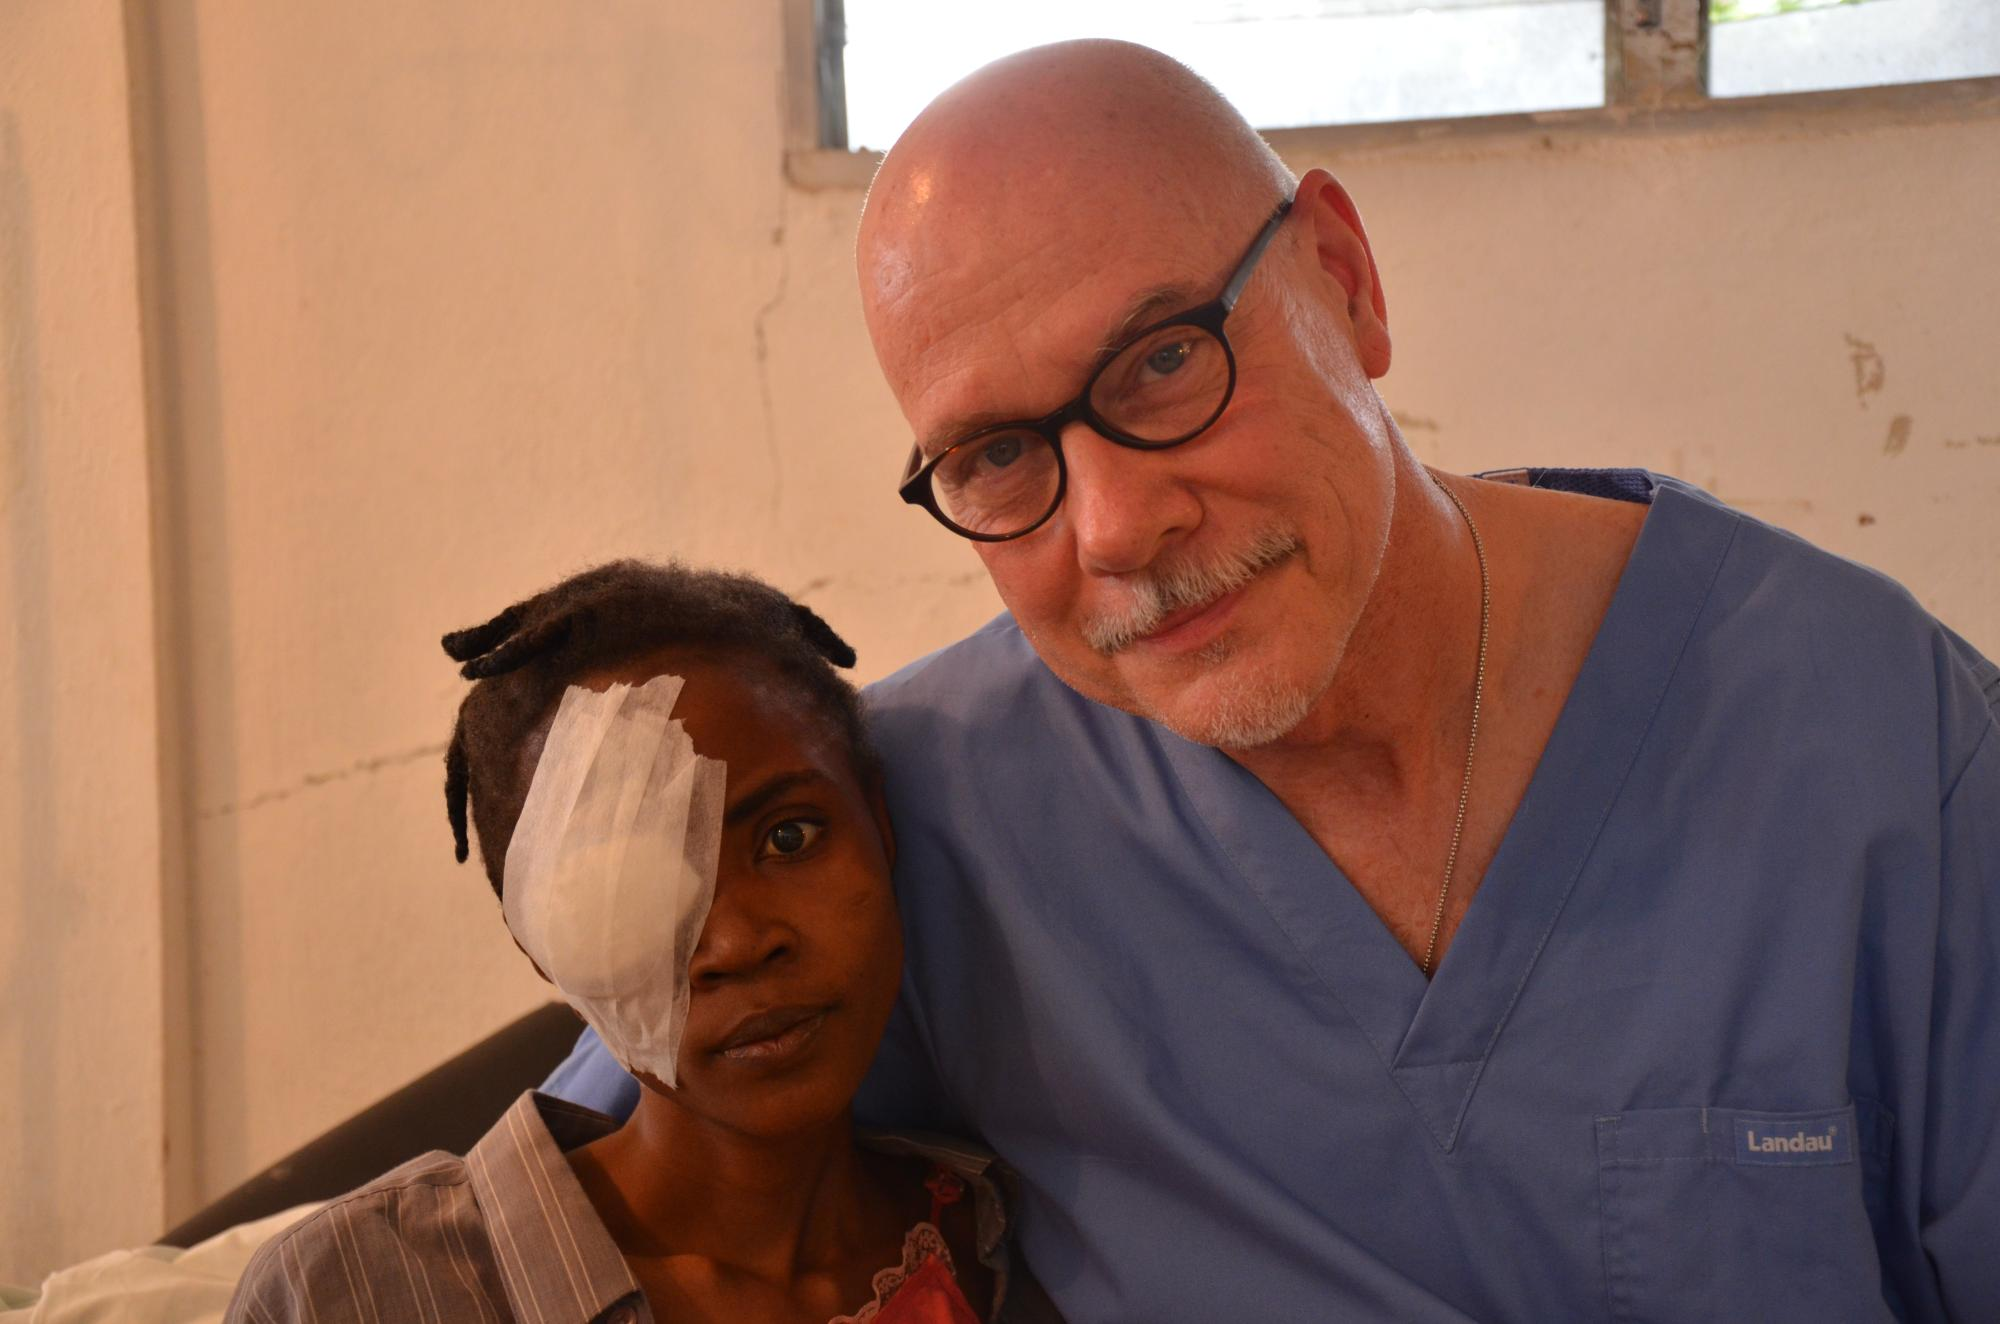 Haiti2013_Dr_sloan_w_Juna_post_surgery_915.jpg